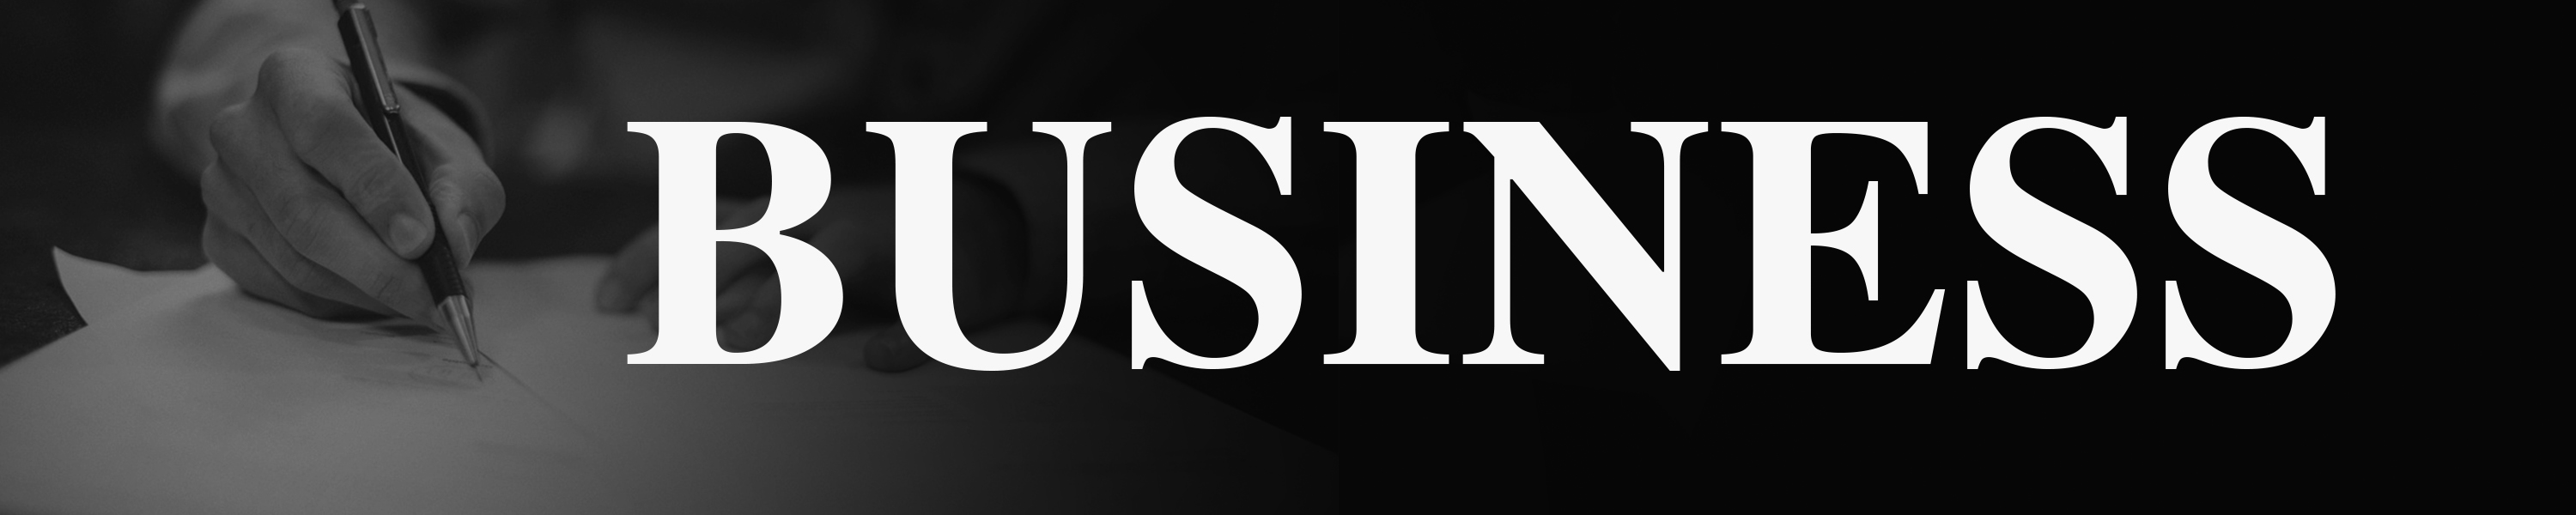 "text image of the word ""business"""